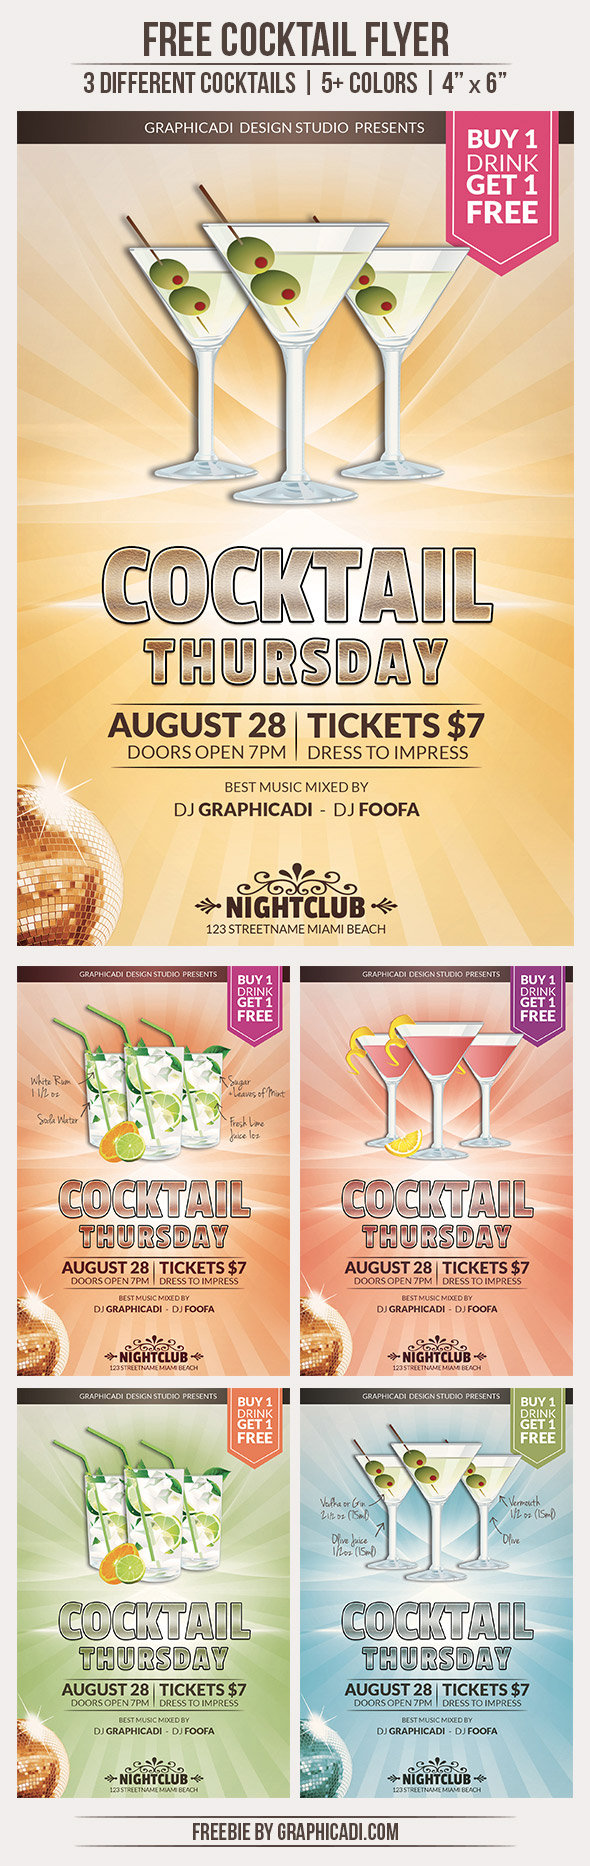 Free Cocktail Flyer Template